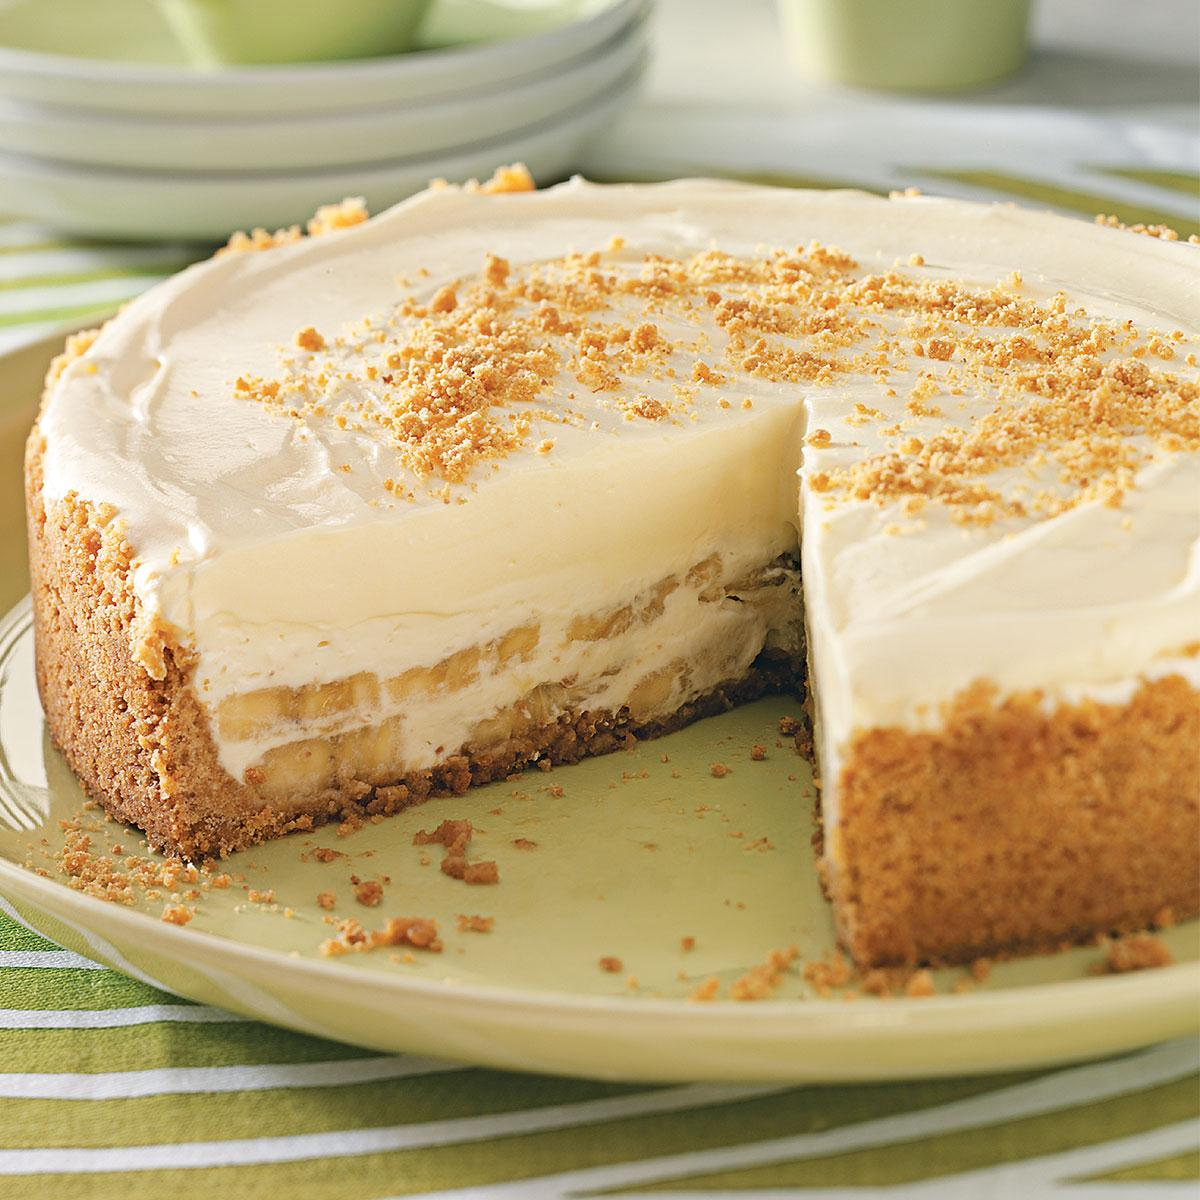 Cheesecake Recipe Made With Yellow Cake Mix